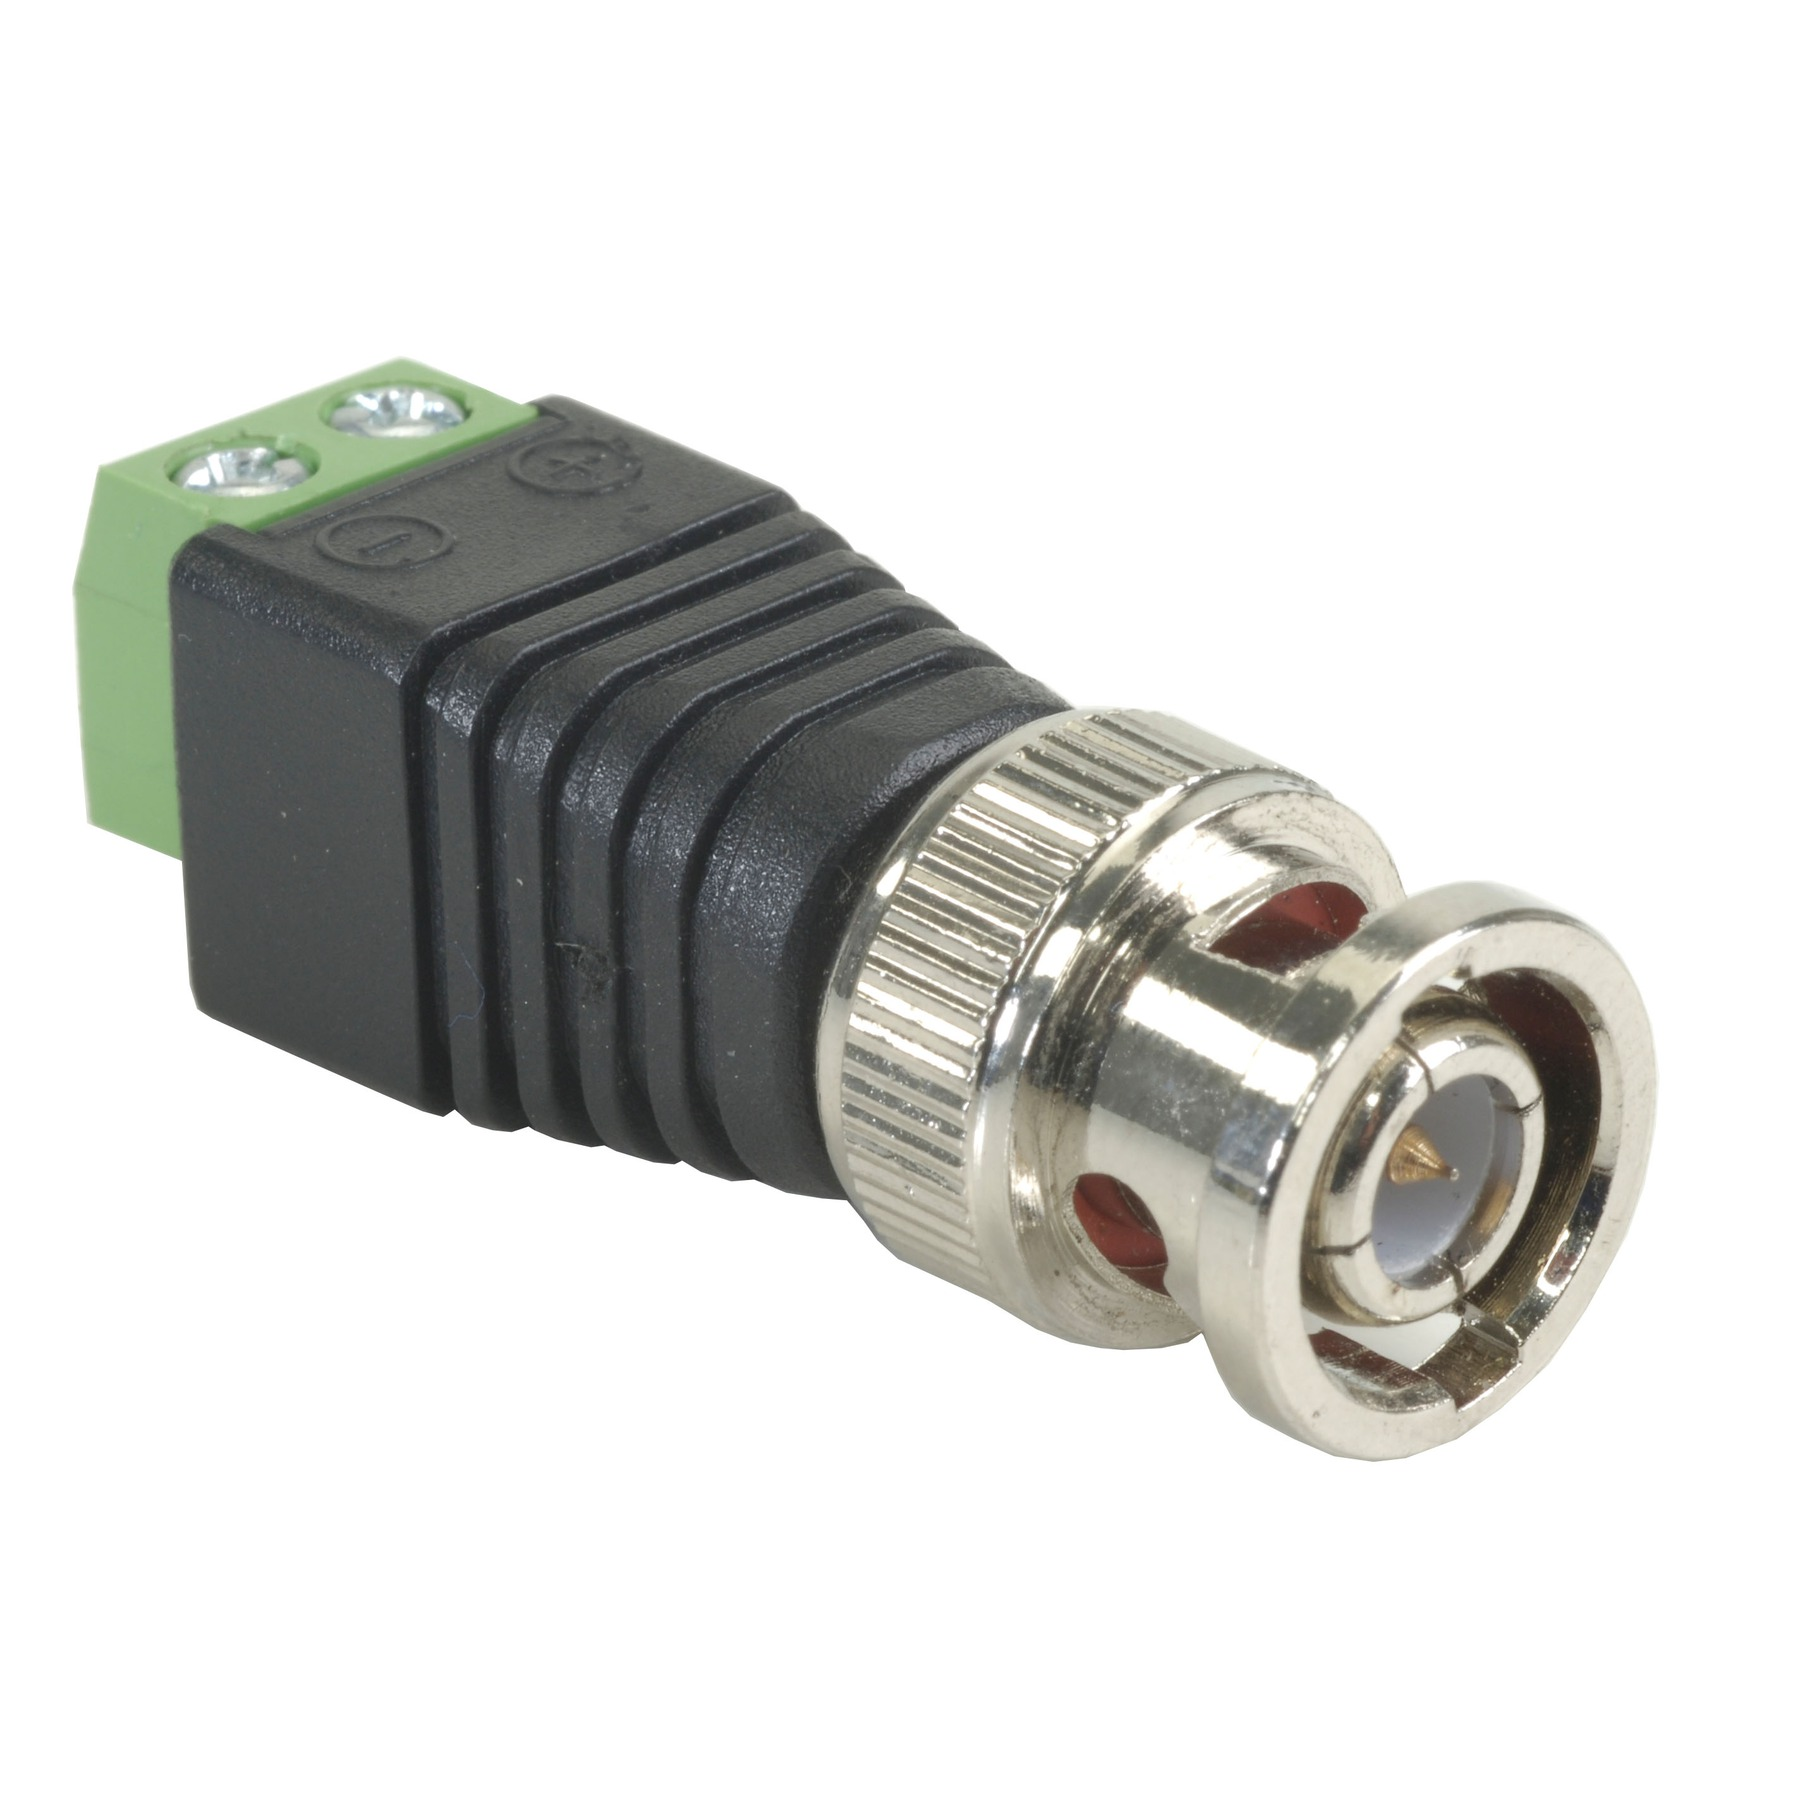 CCTV Camera Connector's,SSS,ST-BNC Connector with Screw Terminals for CCTV Camera